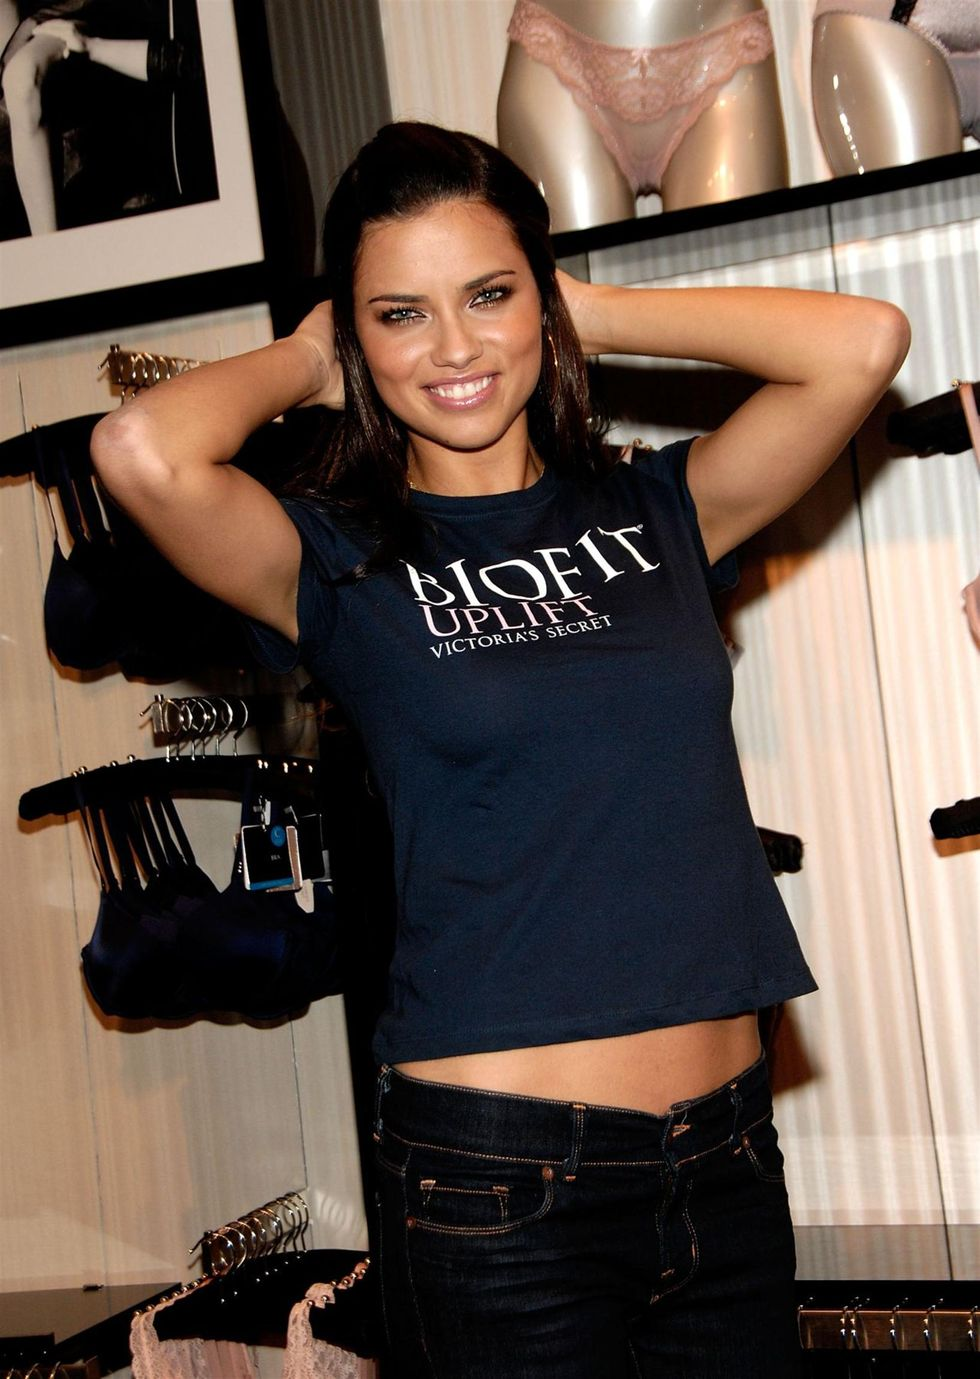 adriana-lima-unveils-biofit-uplift-collection-at-victorias-secret-in-new-york-01